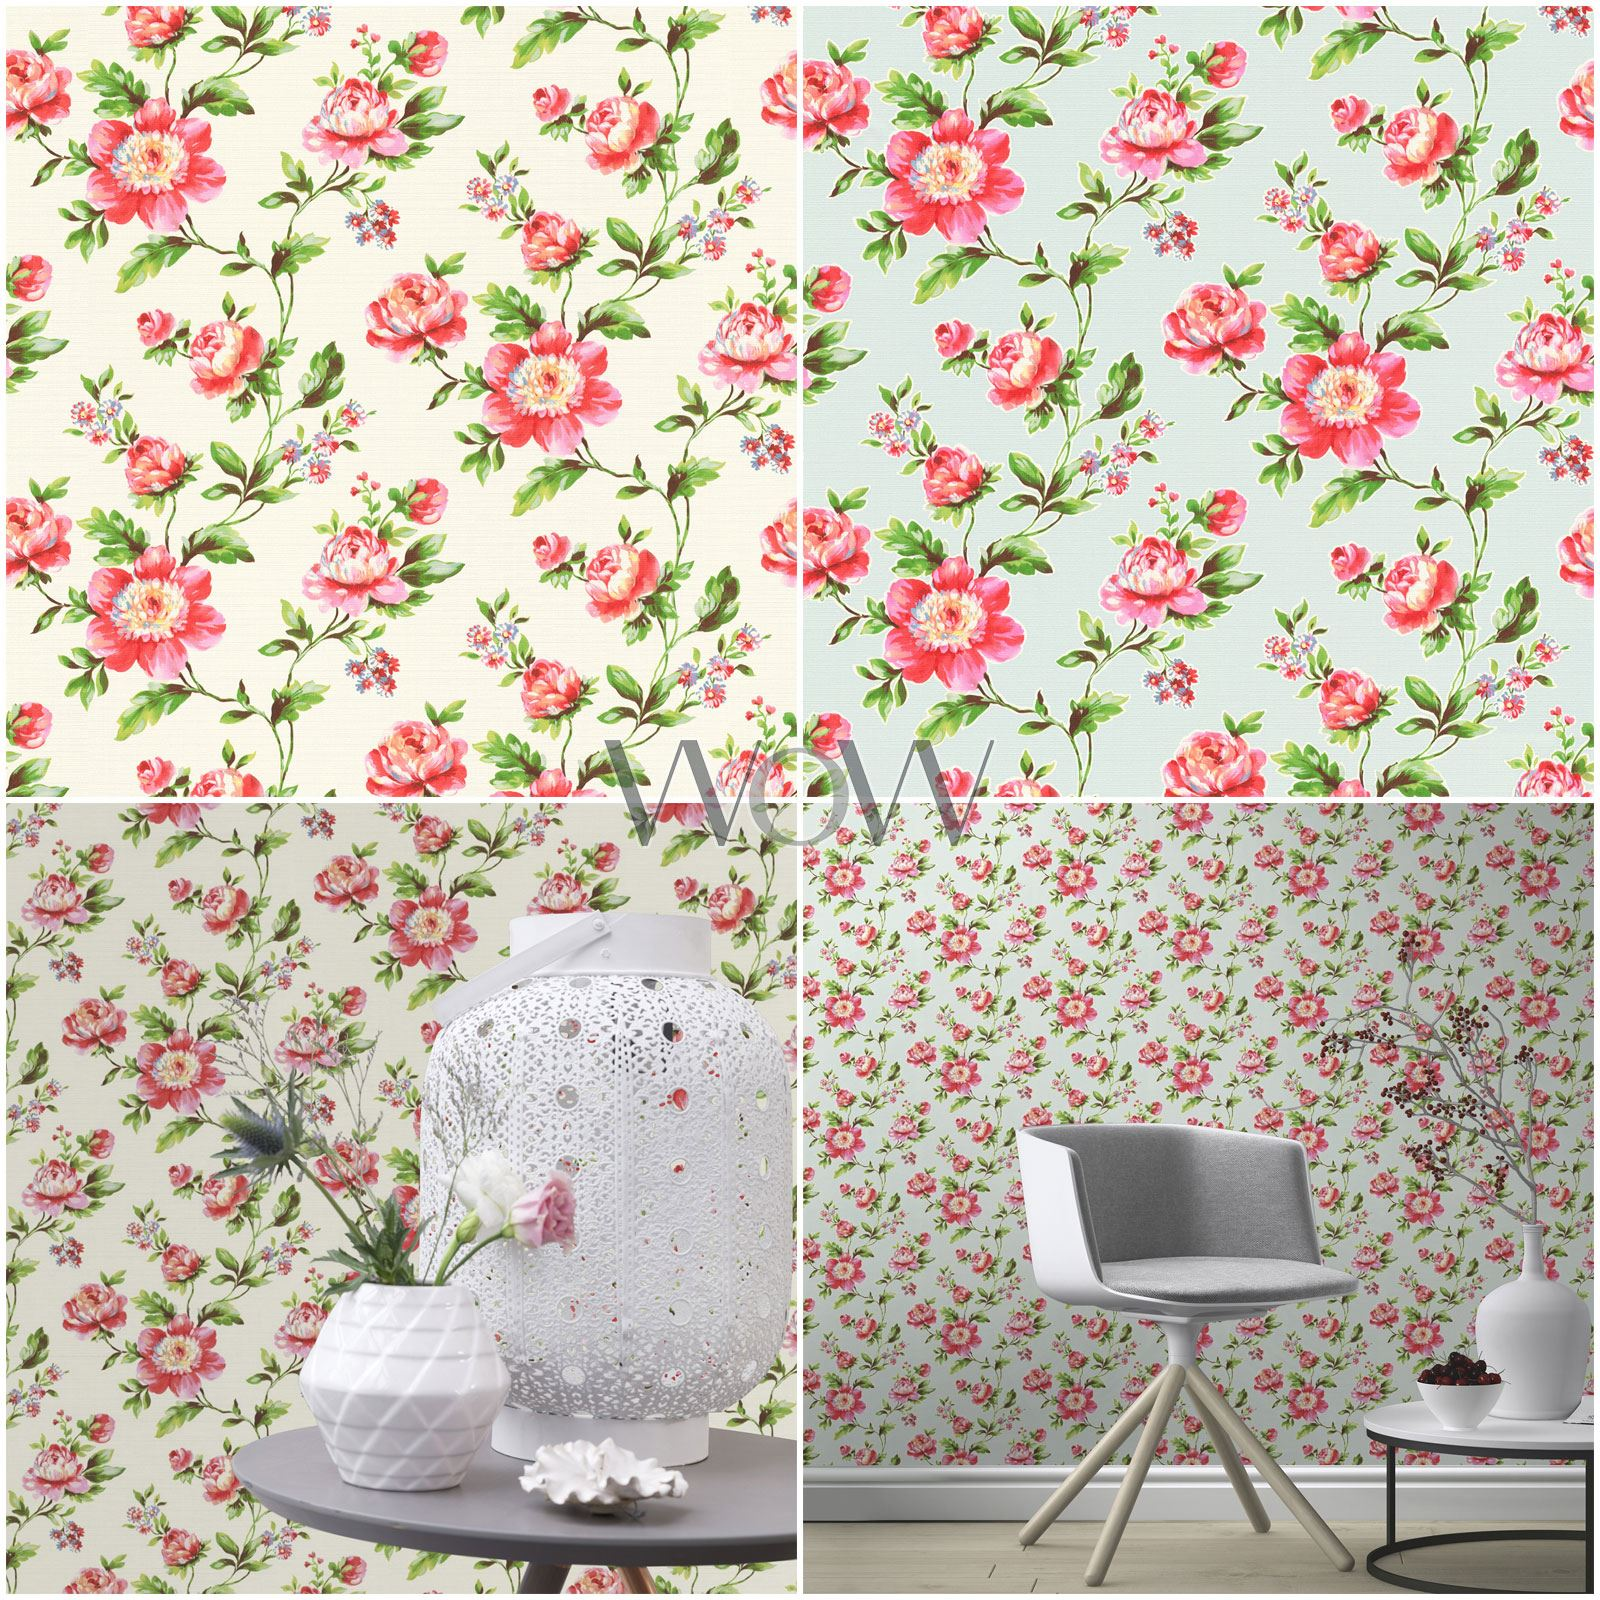 Shabby Chic Bedrooms Adults: RASCH SHABBY CHIC ROSE FLORAL WALLPAPER TEXTURED